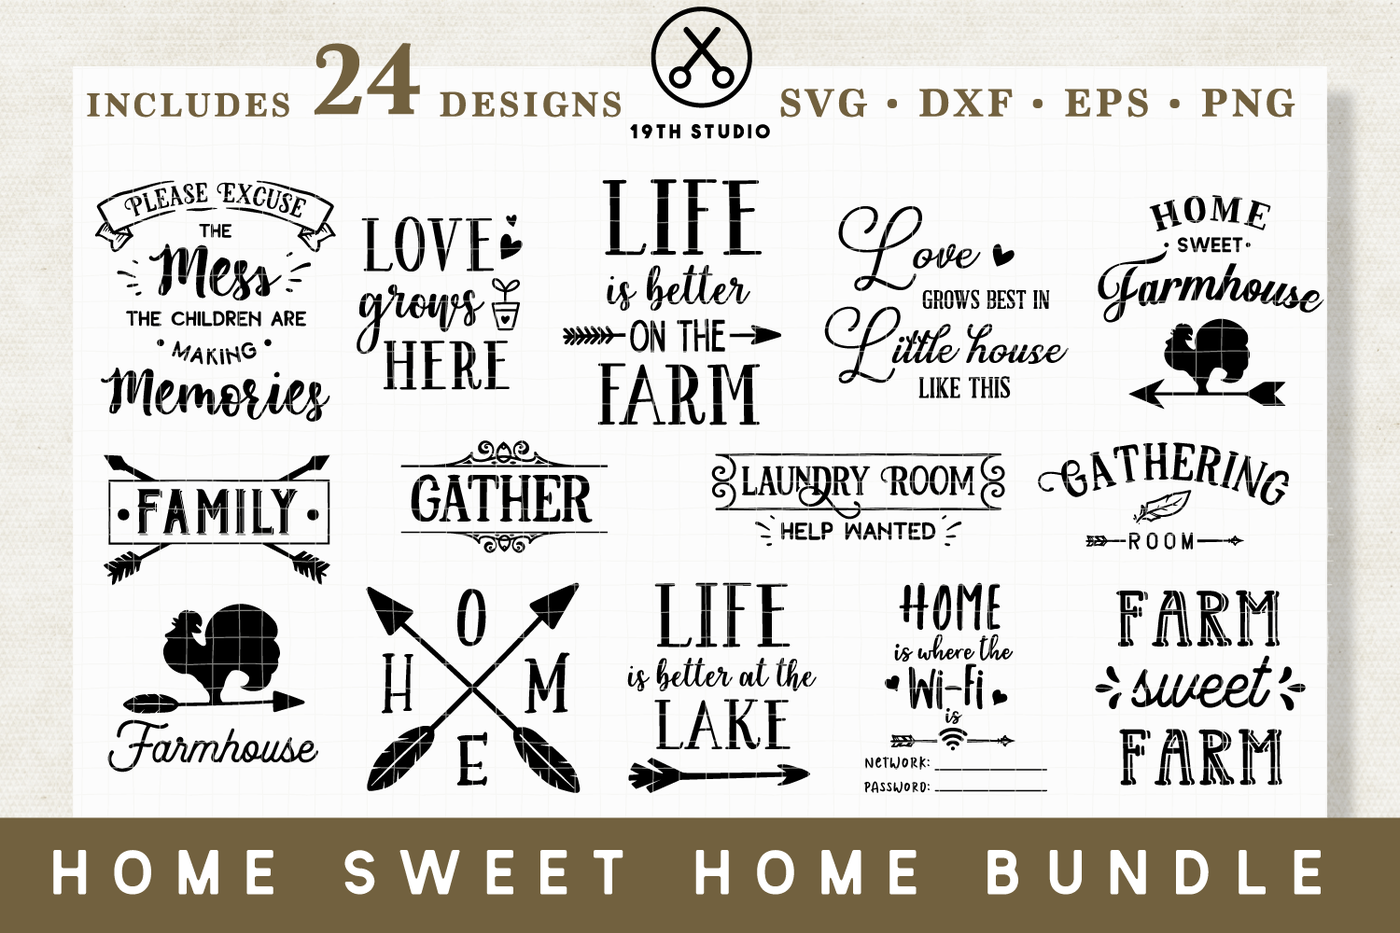 Home Sweet Home Svg Bundle M14 By 19th Studio Thehungryjpeg Com